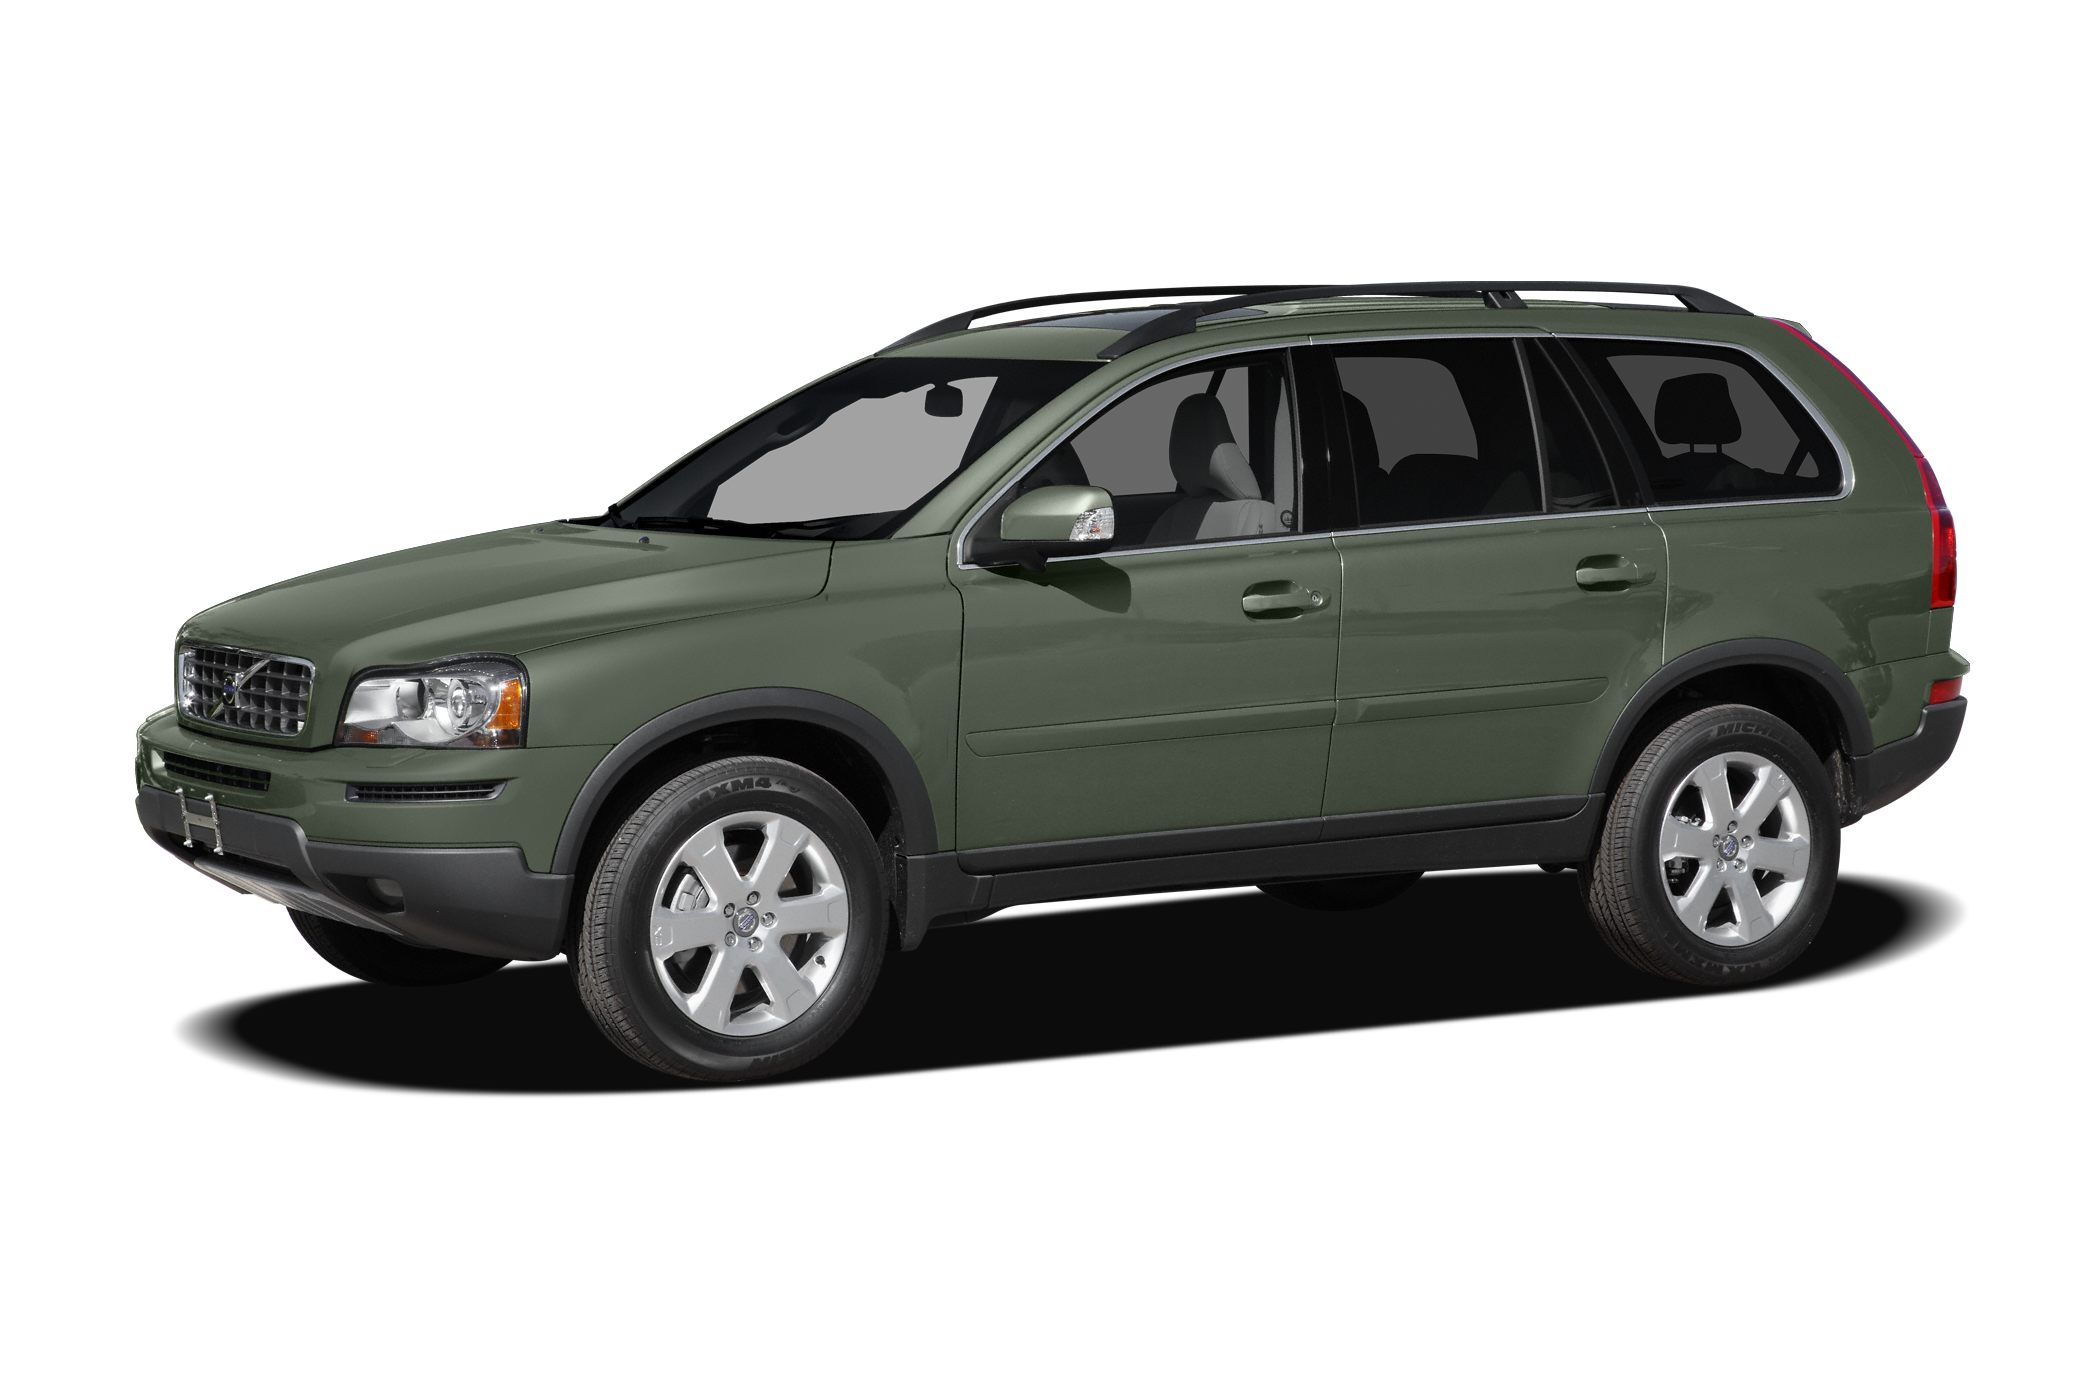 2010 Volvo XC90 V8 SUV for sale in Santa Fe for $30,985 with 55,422 miles.